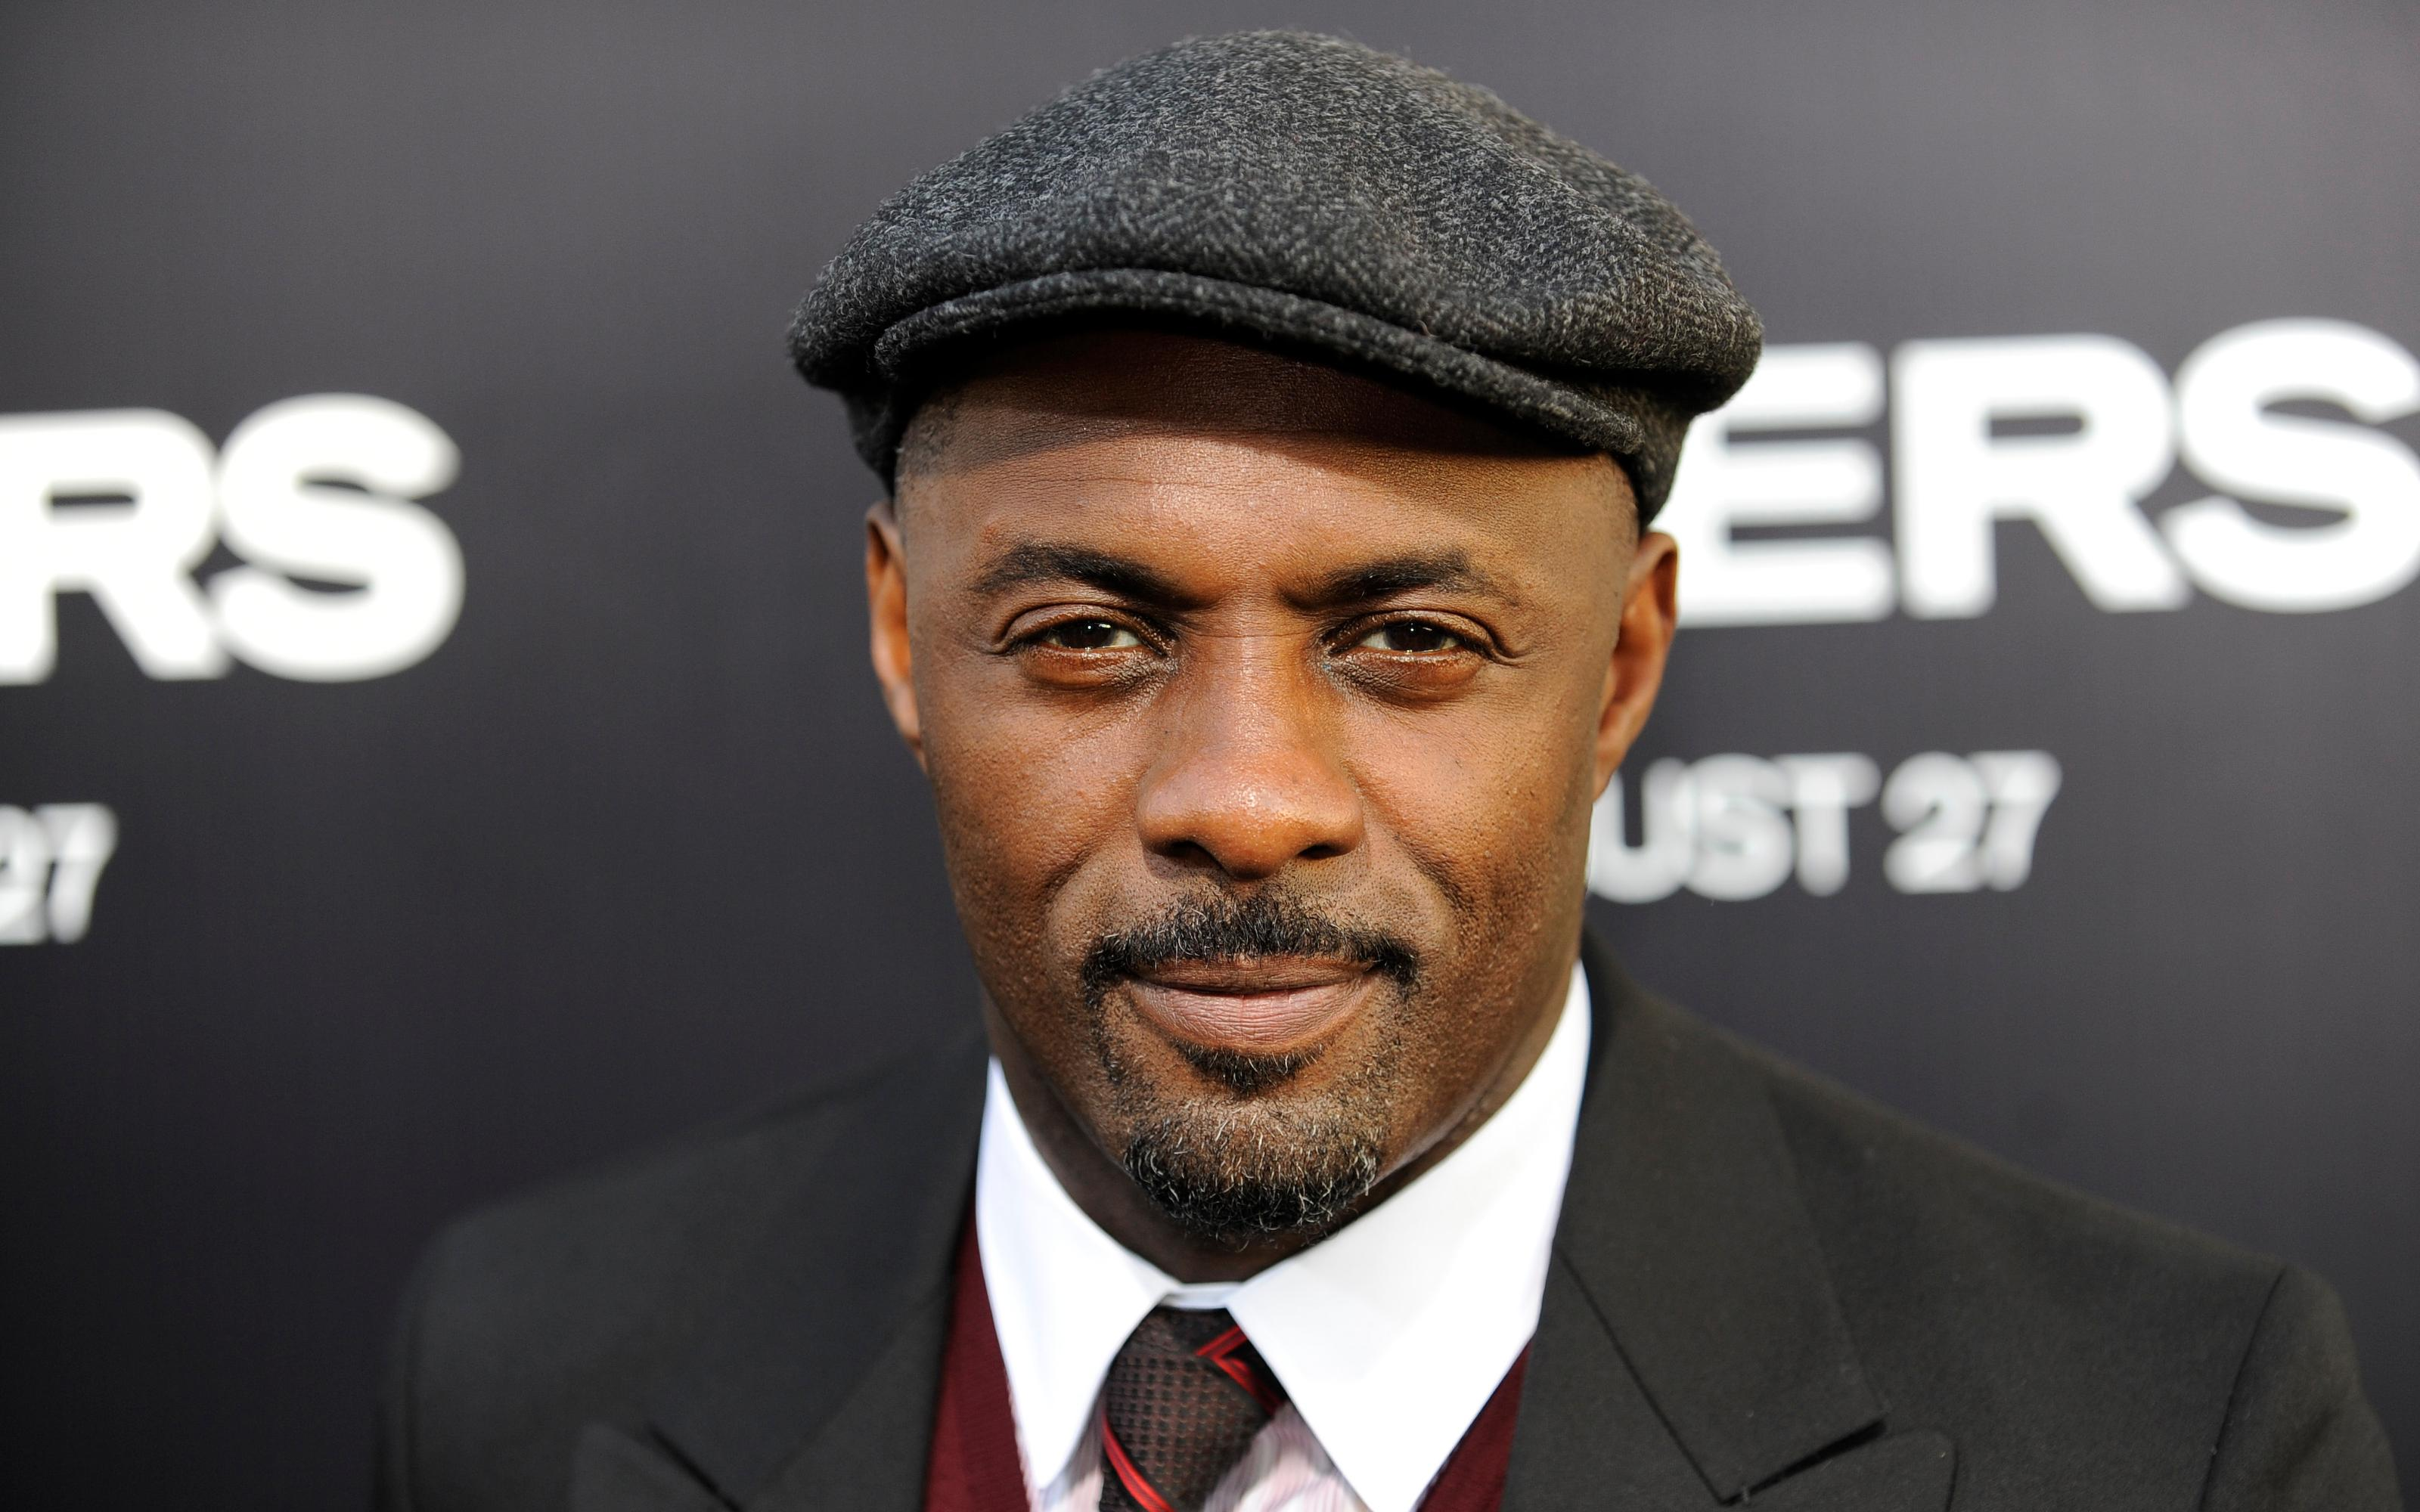 idris elba actor widescreen wallpaper 50641